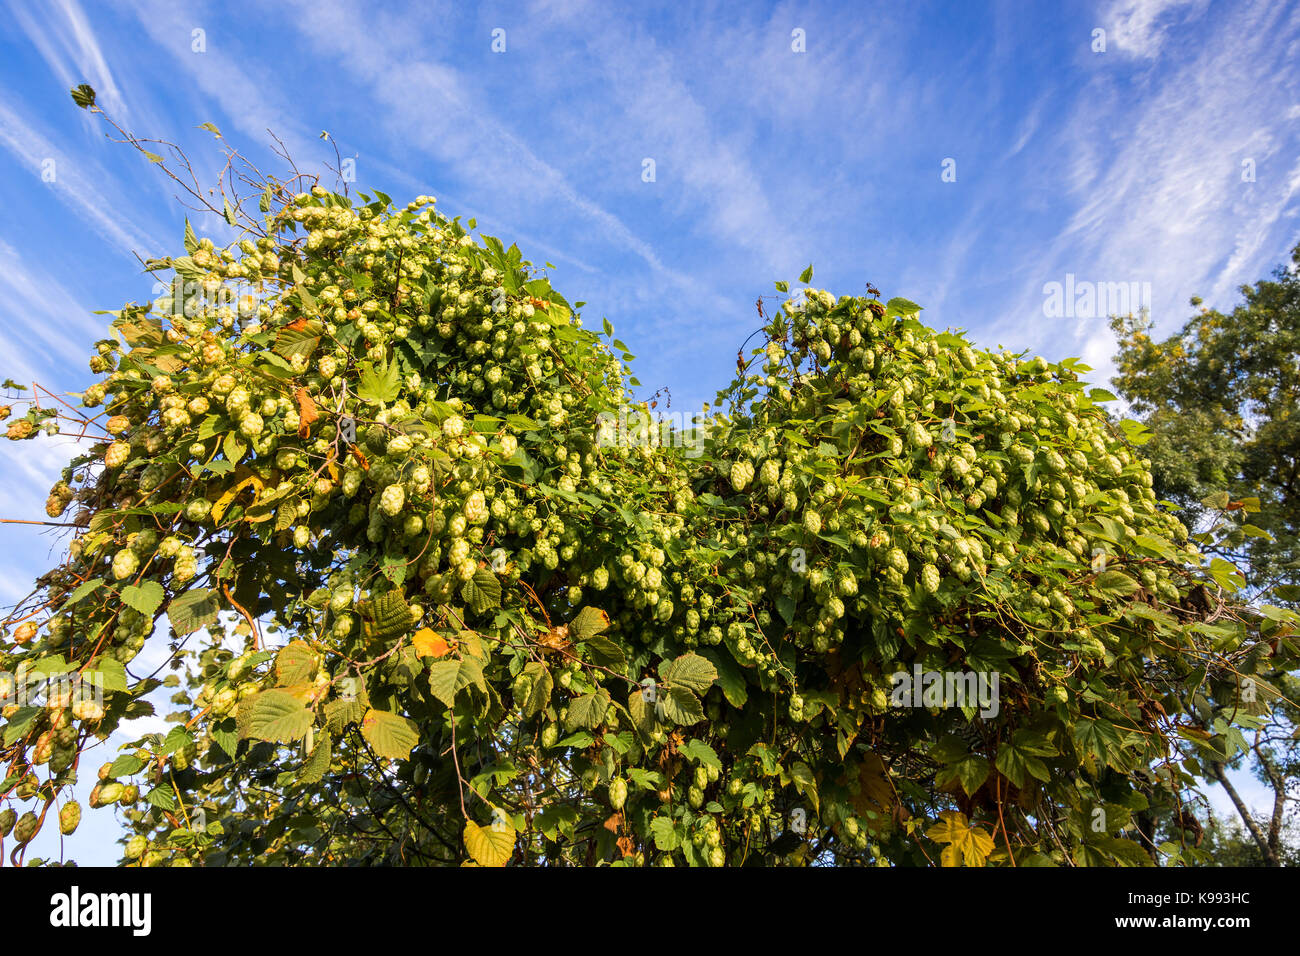 Wild hops growing on bushes. - Stock Image